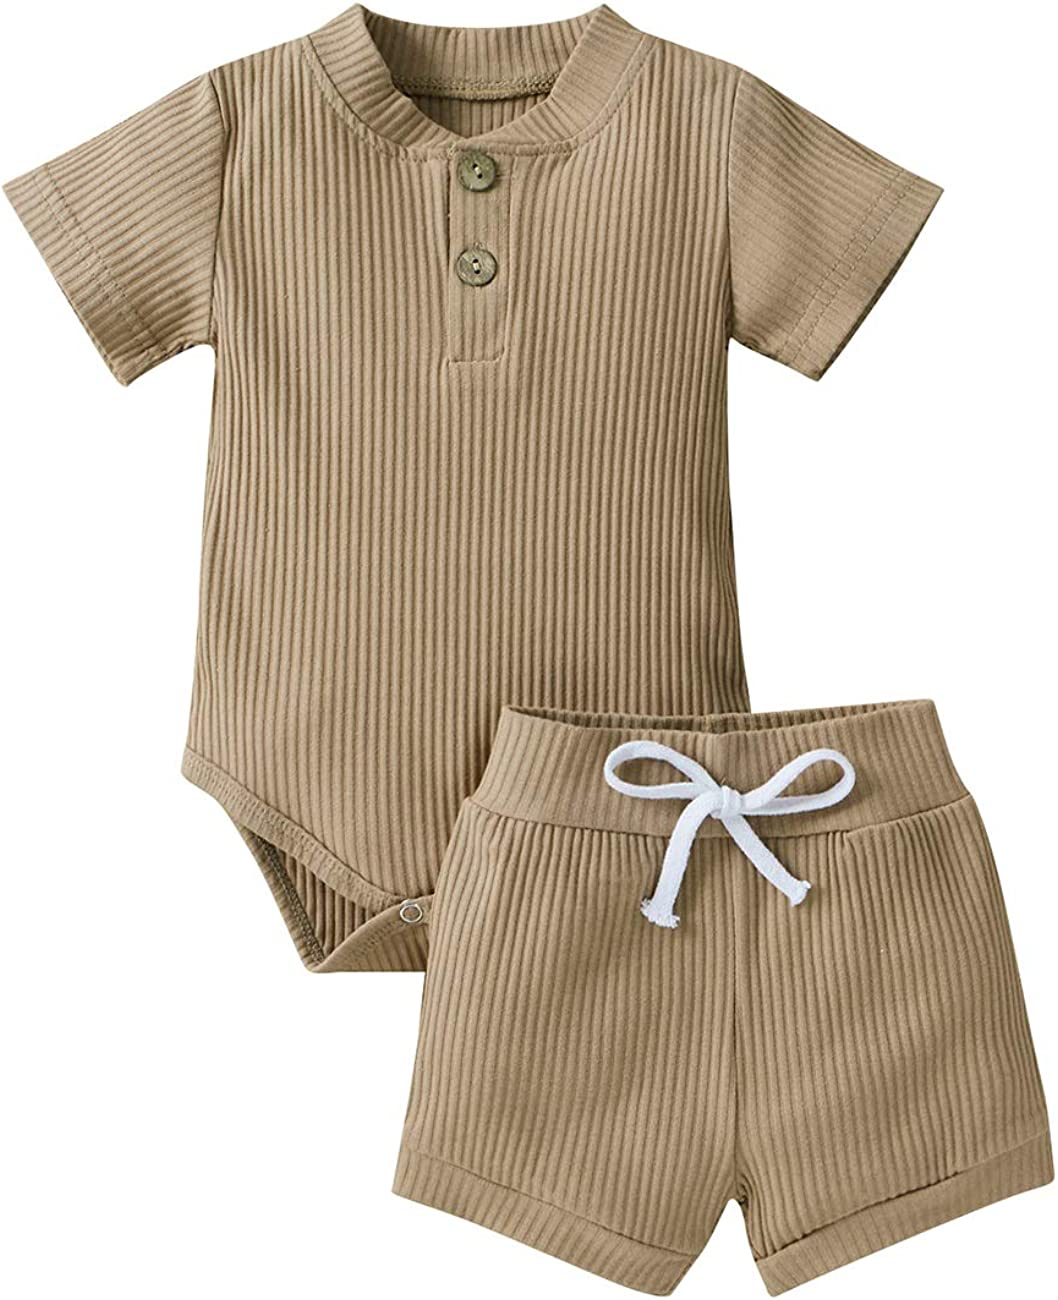 Newborn Baby Boy Girl Ribbed Shorts Outfits Cotton Solid ColorShort Sleeve Romper Bodysuit Summer Casual Shorts Clothing Set